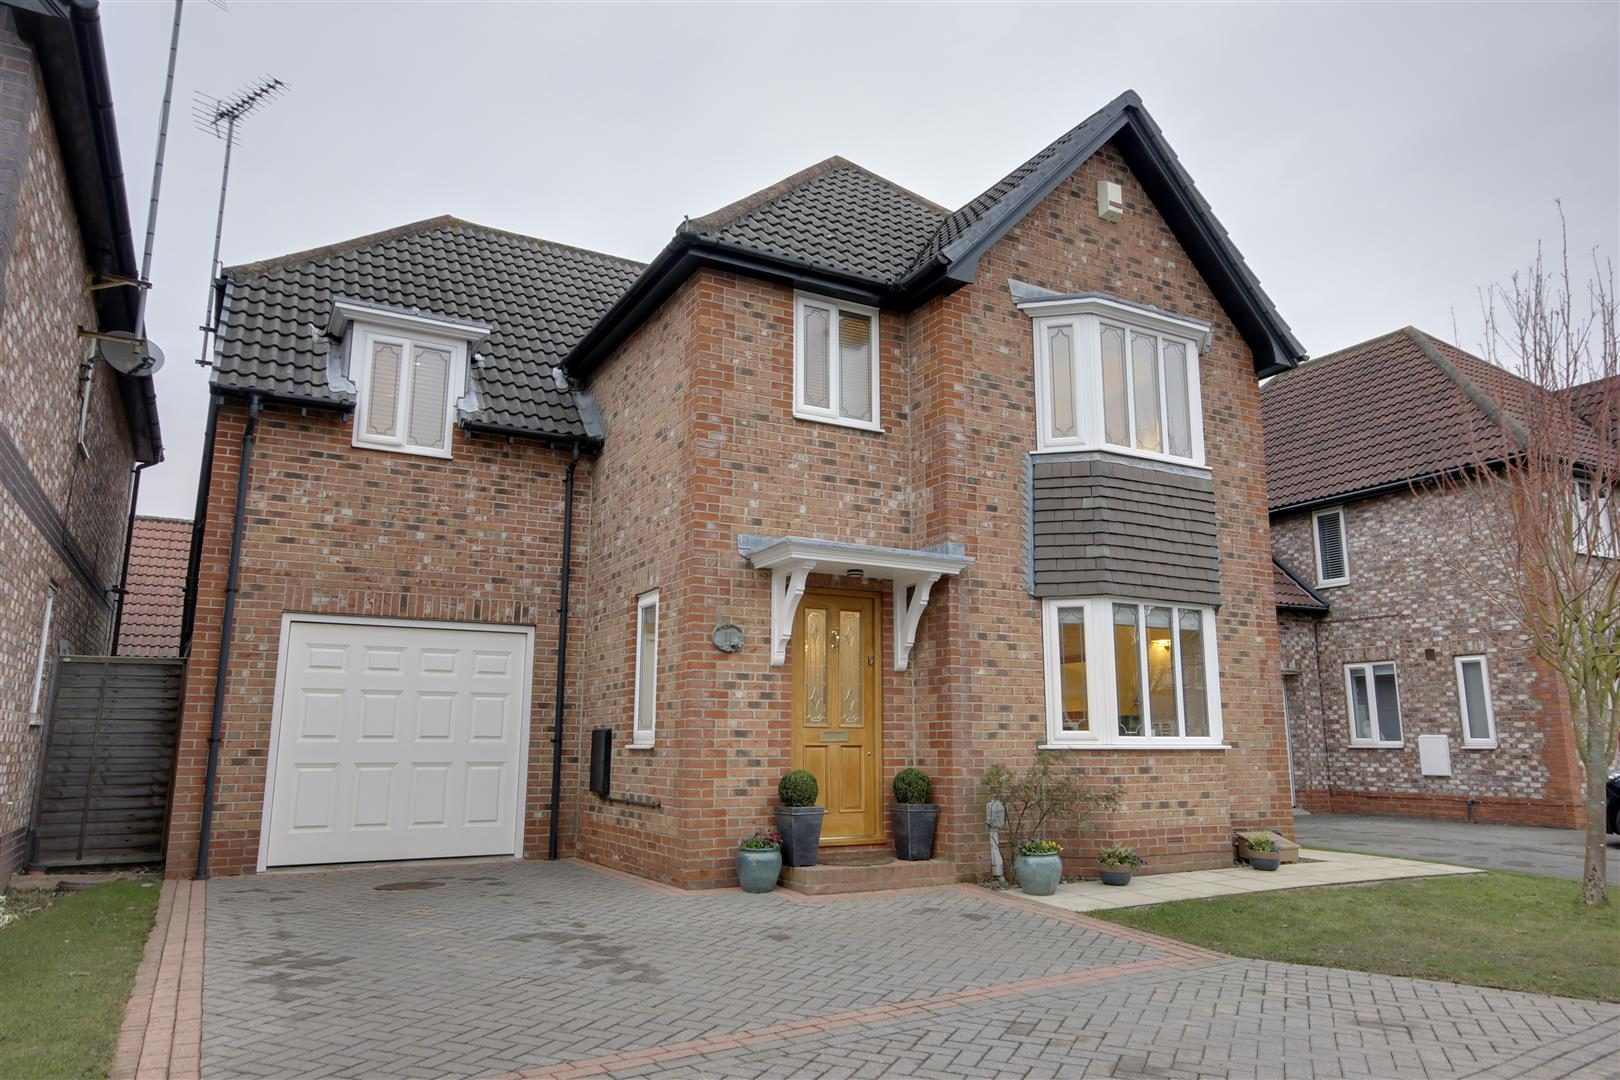 11 Old Pond Place, North Ferriby, 11, HU14 3JE